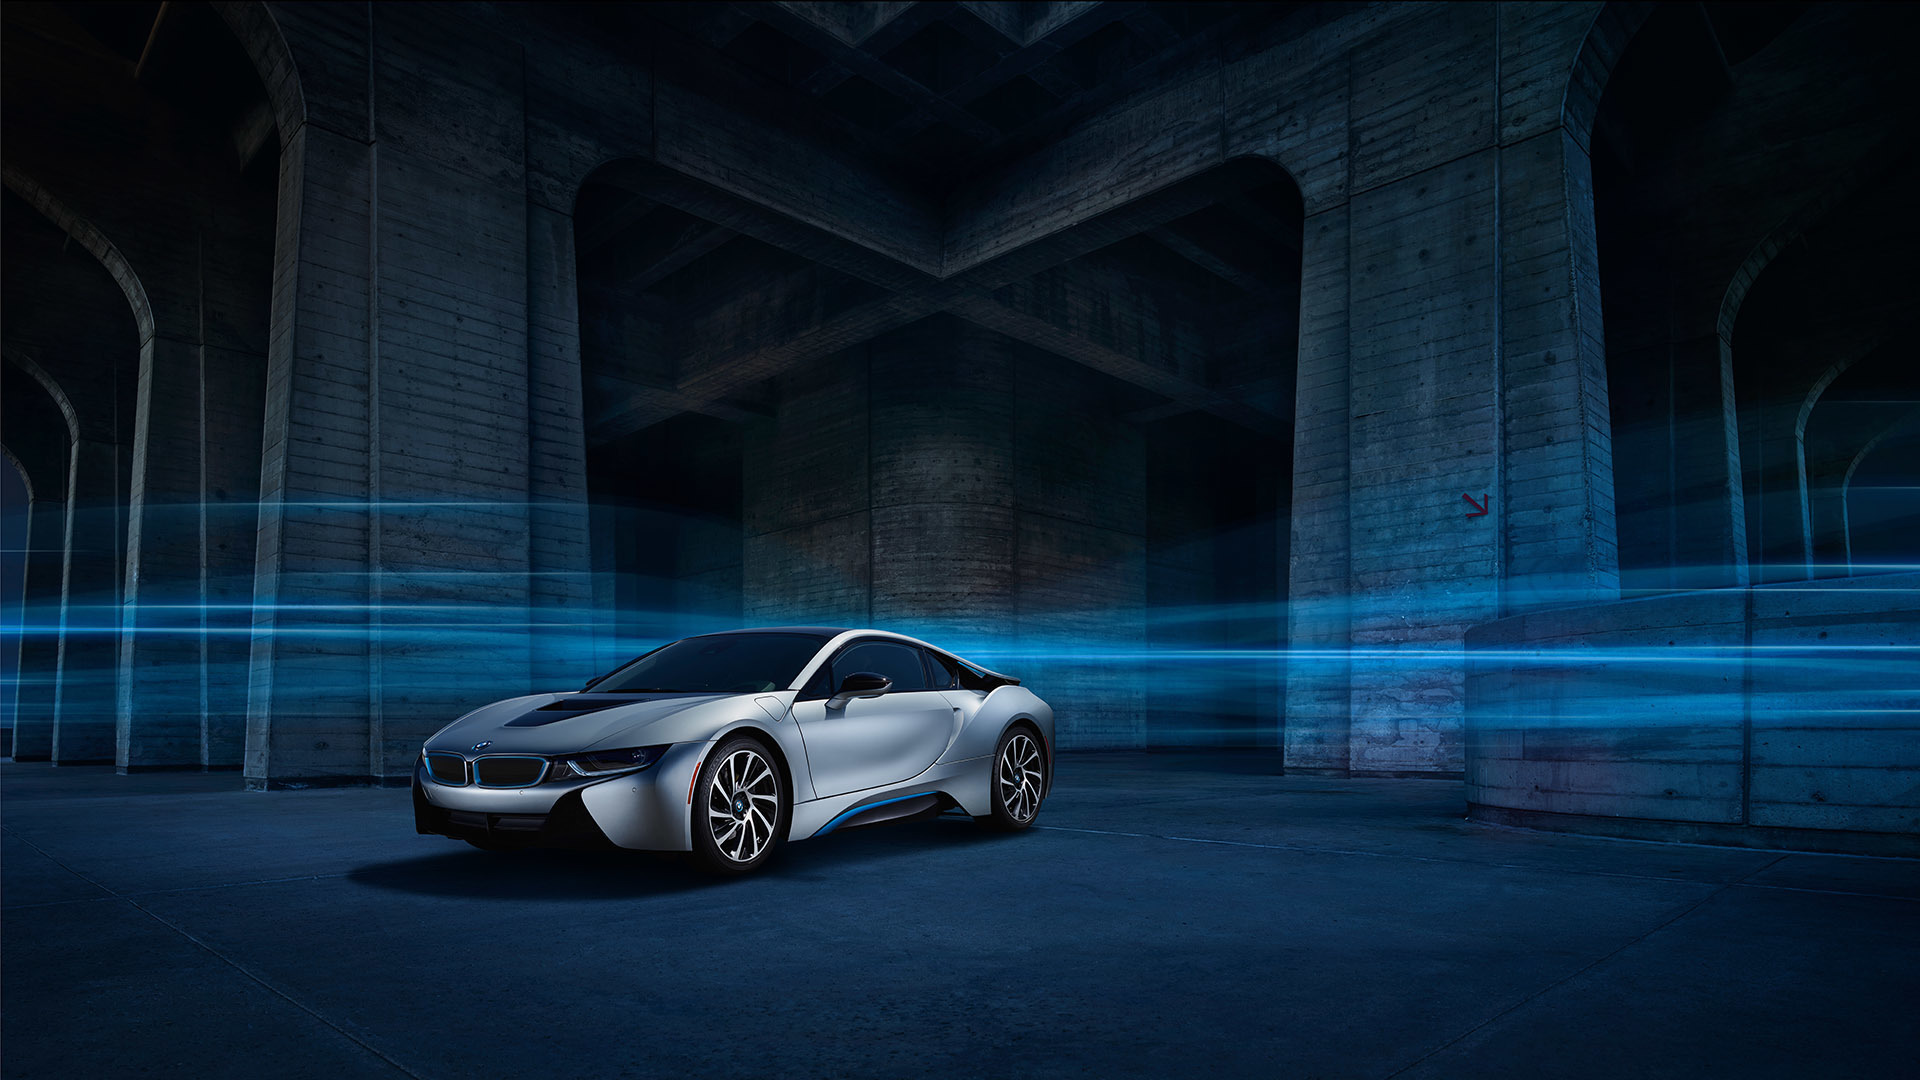 dw_1703_bmw_i8_shot_01_ucsd_fnl_lay_rgb_v2